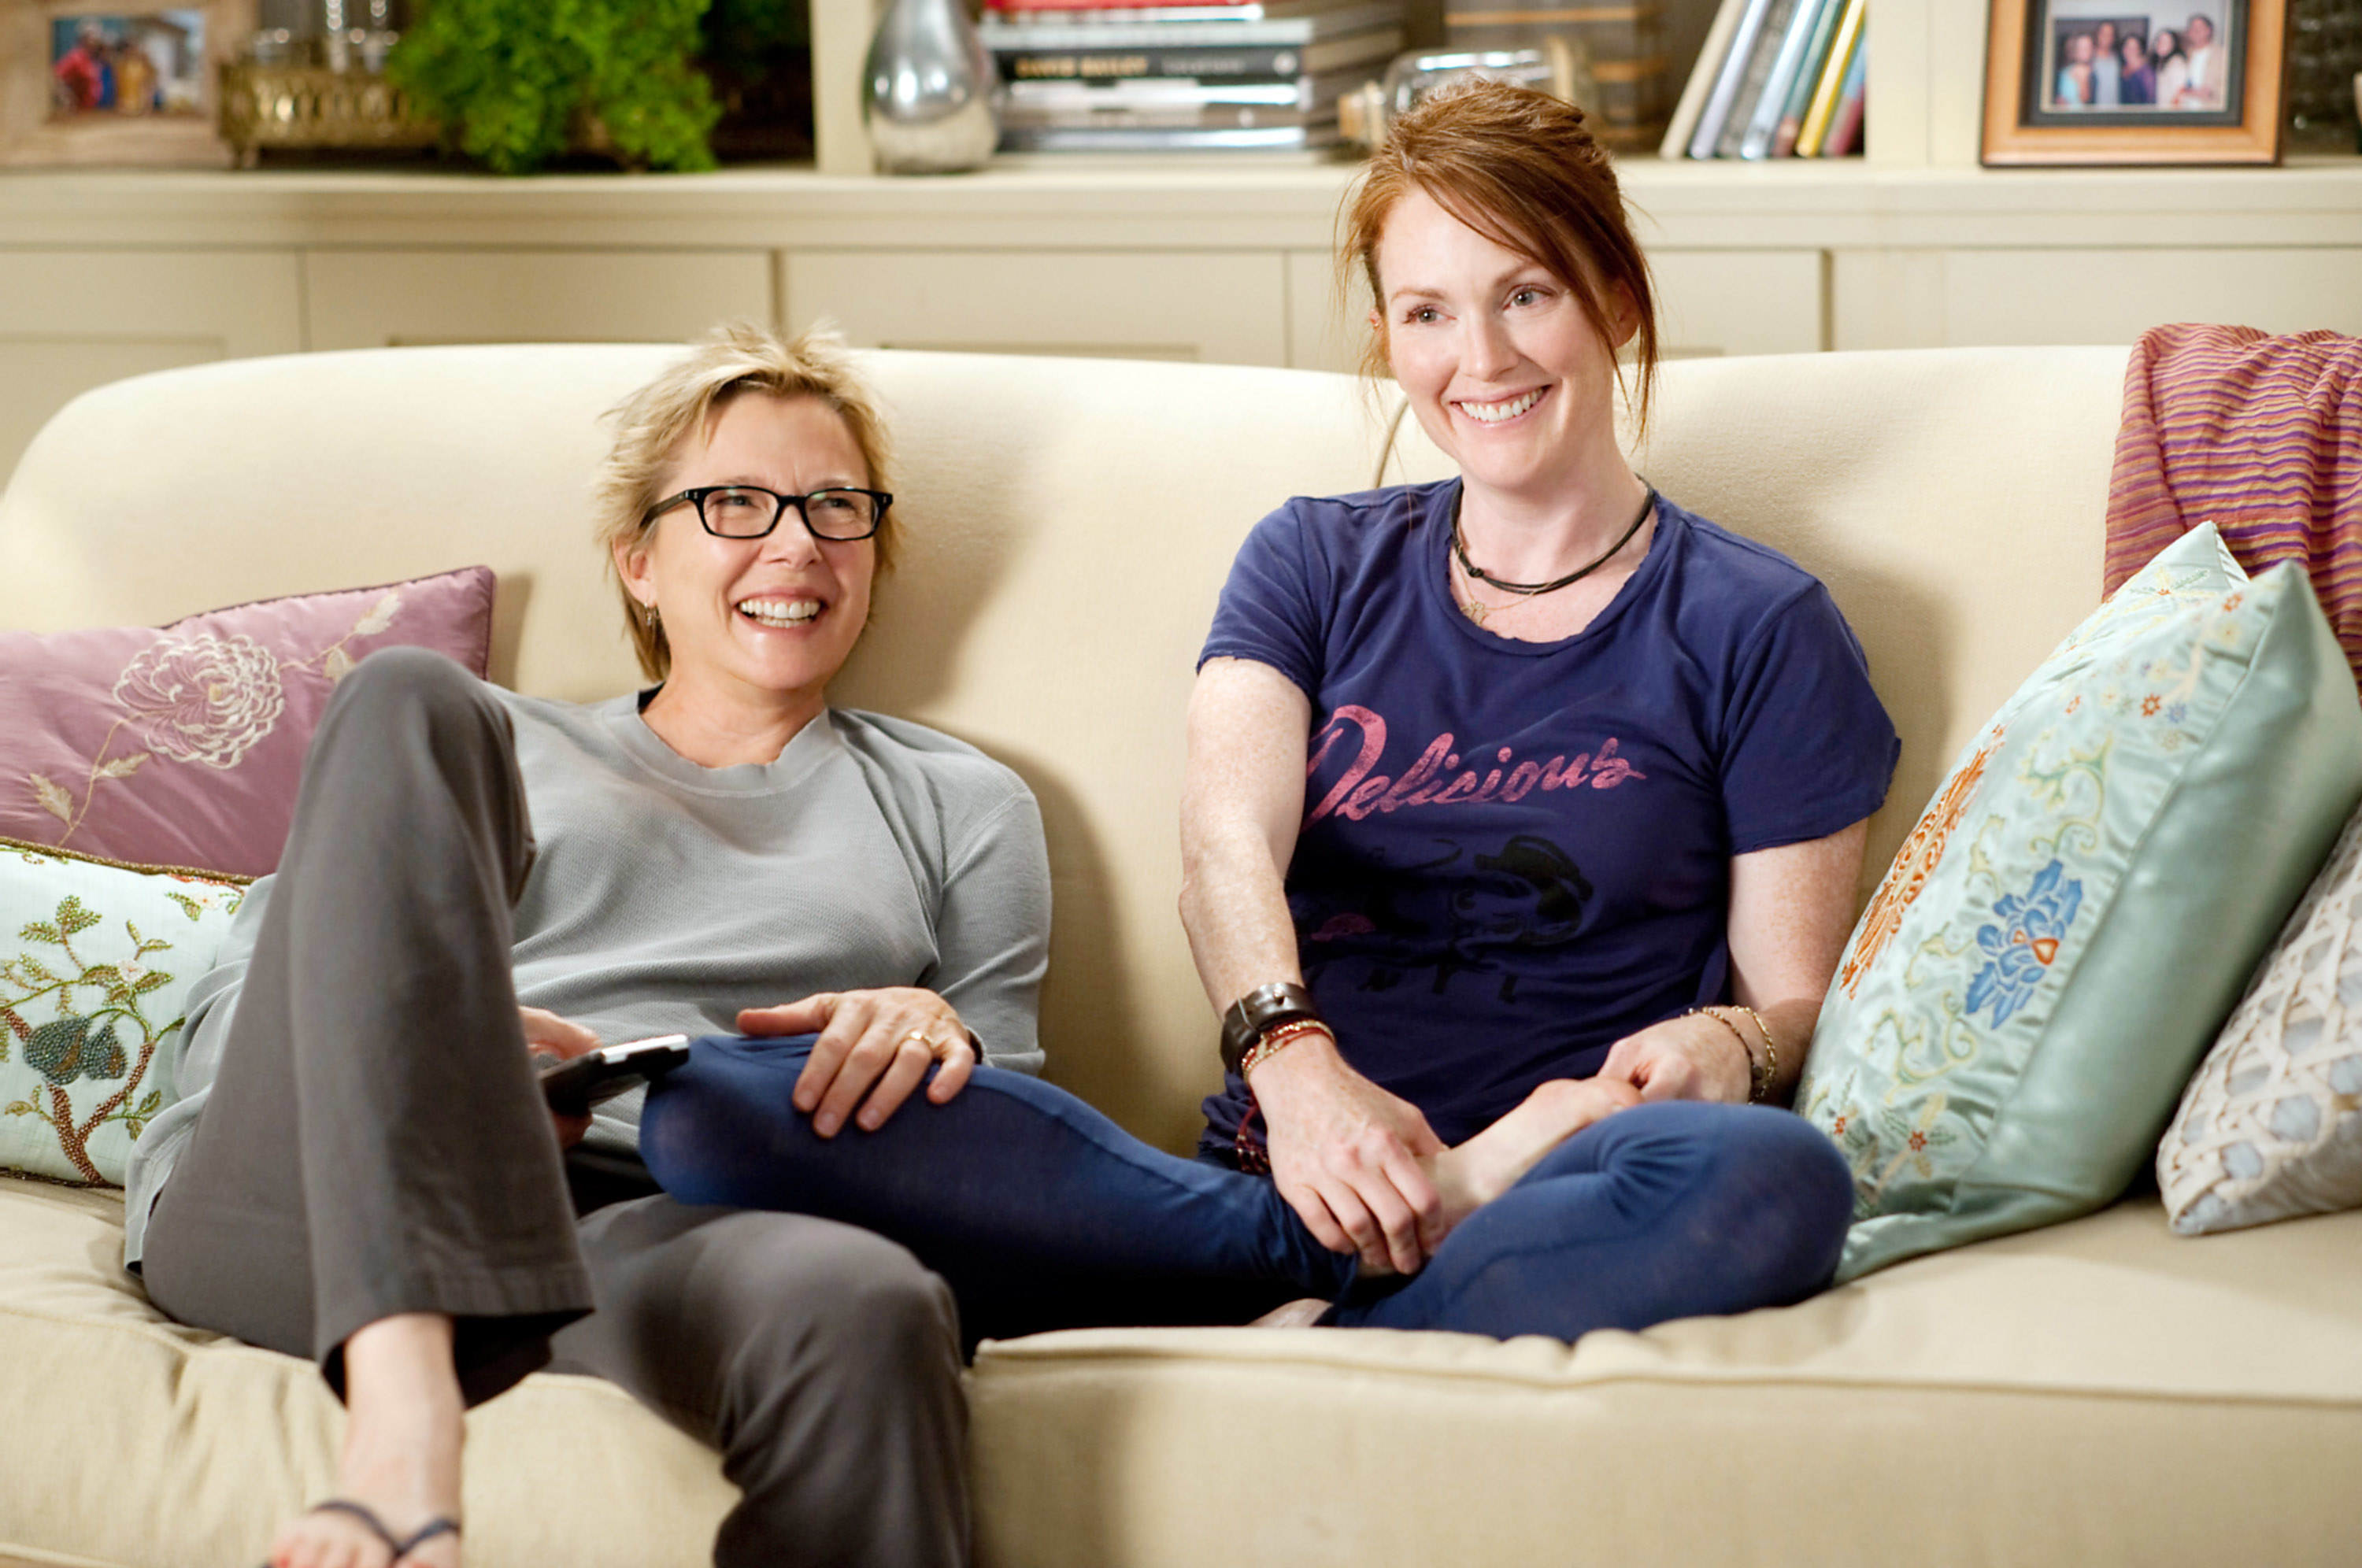 """Julianne Moore and Annette Bening sitting on a couch in """"The Kids Are All Right"""""""